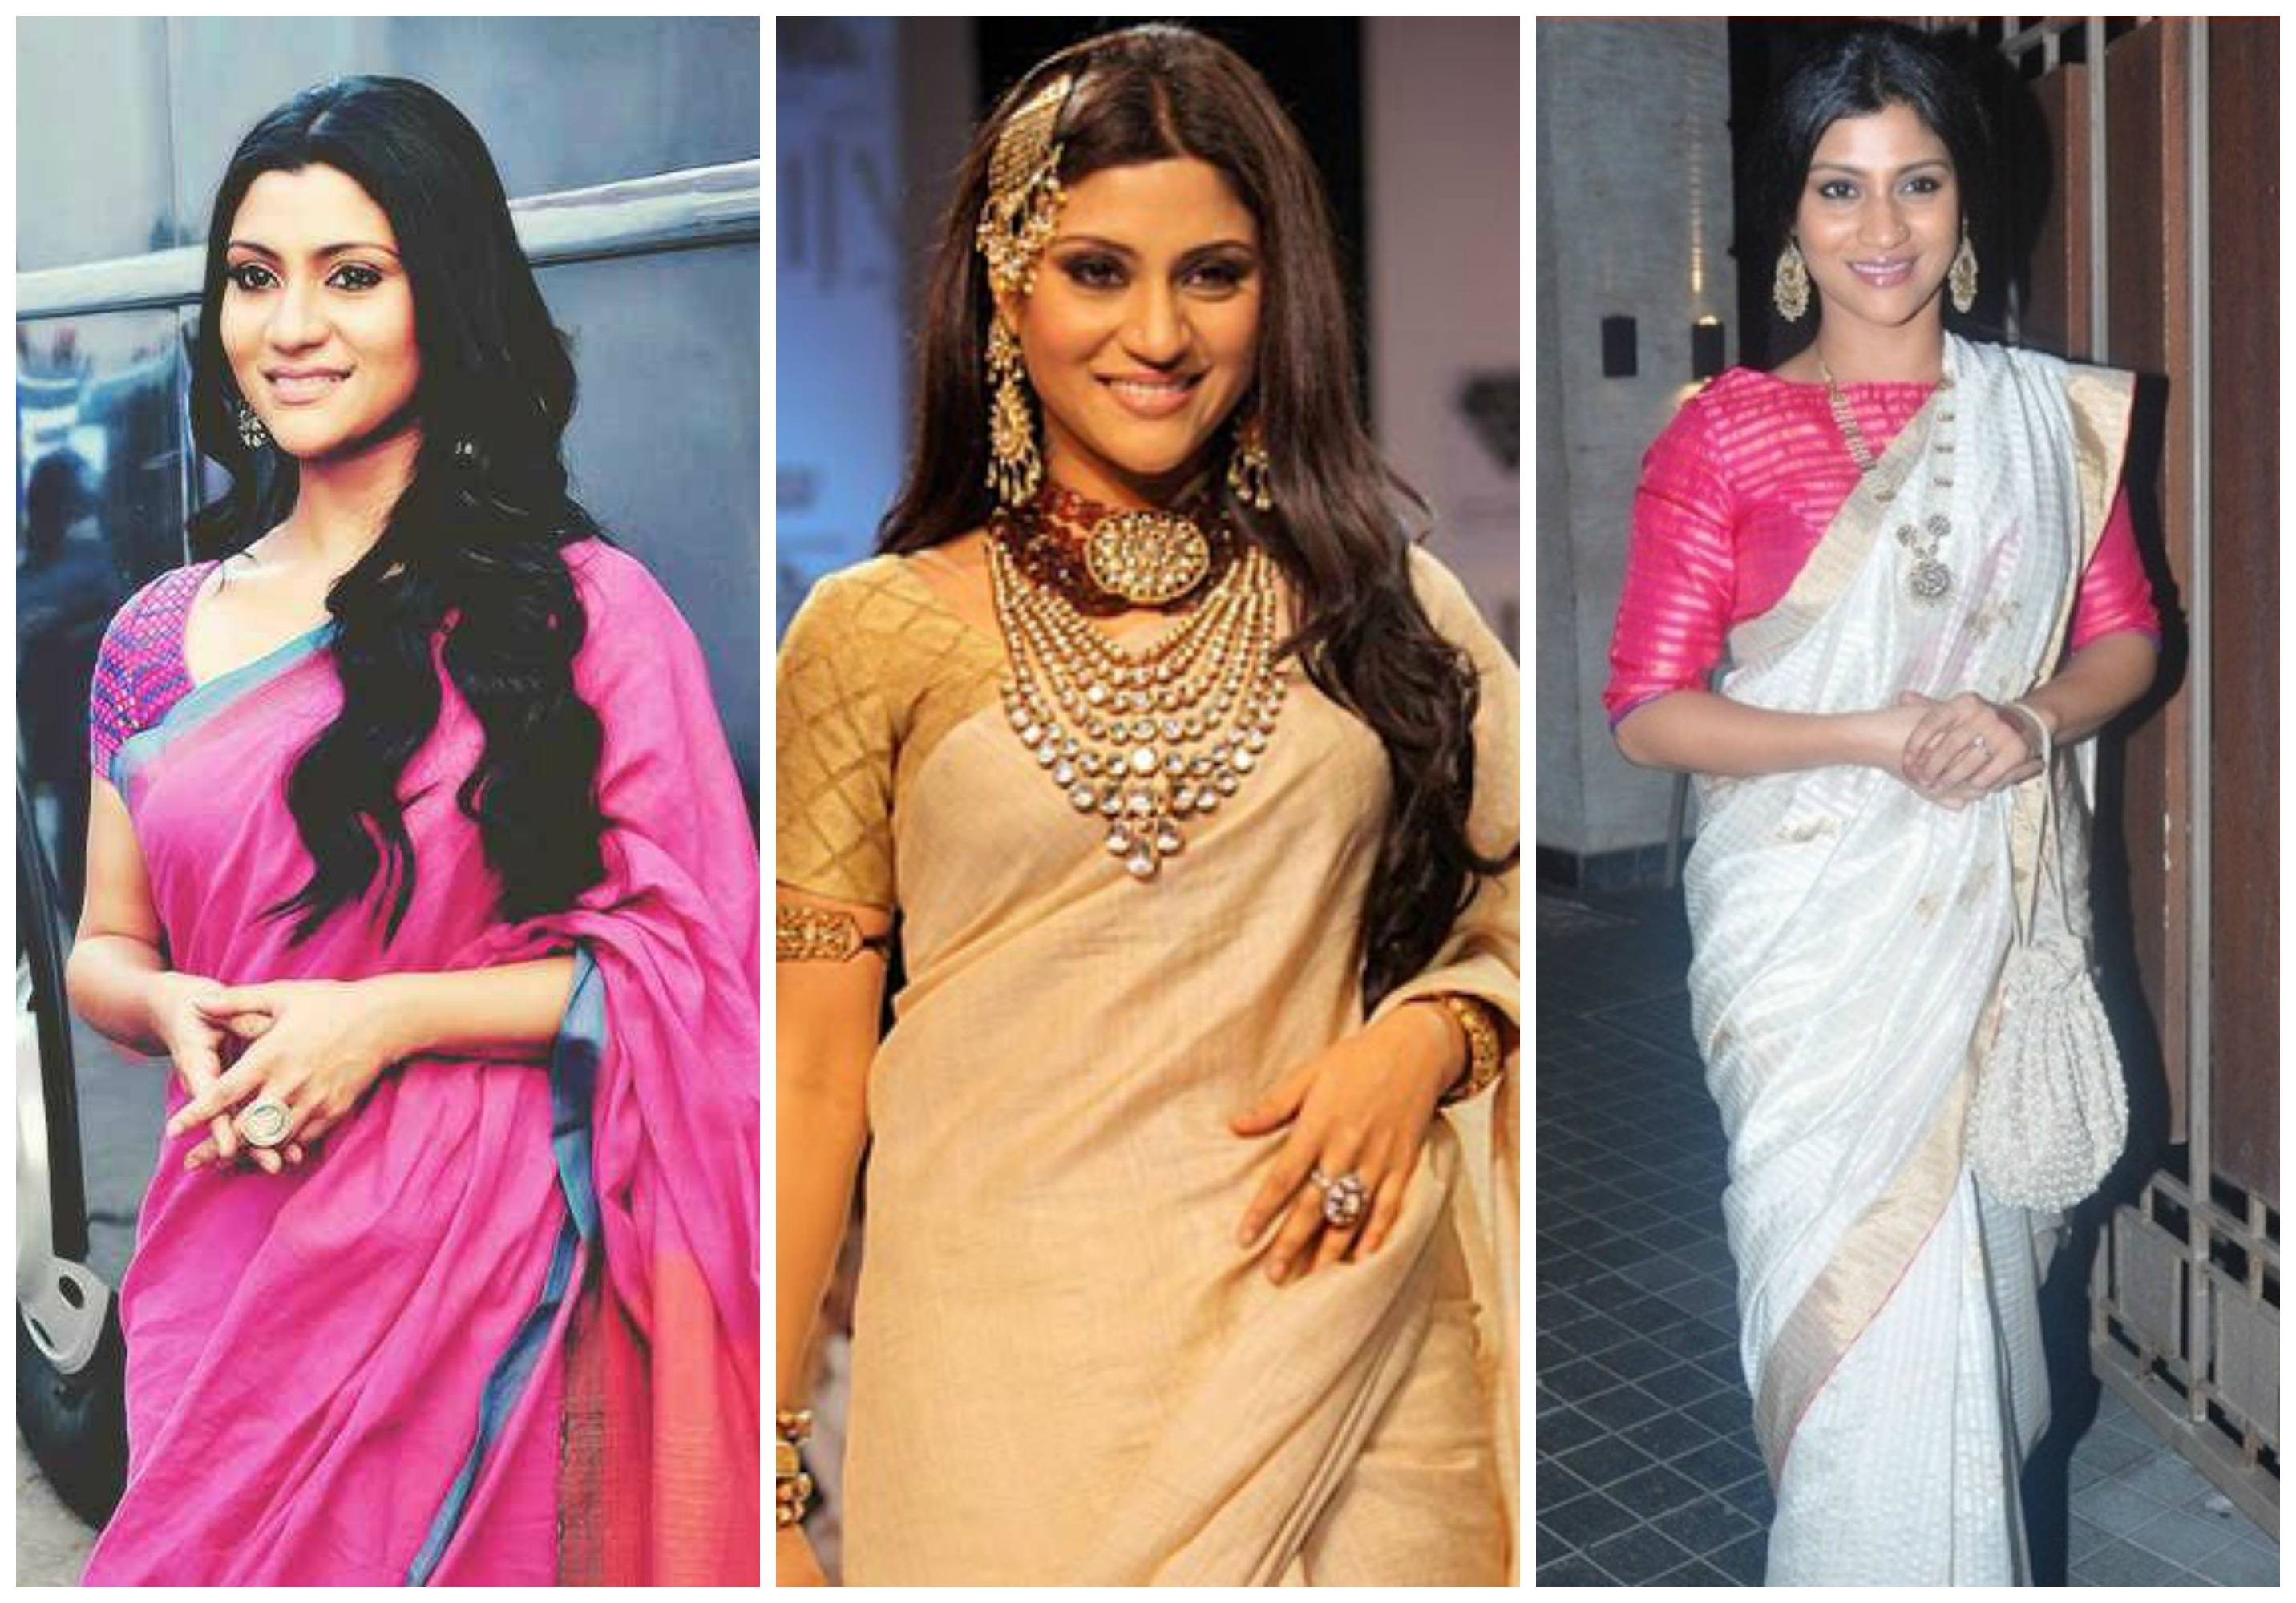 konkona-sen-sharma-in-sarees How to Wear Saree for Short Height? 14 Pro Tips for Short Girls